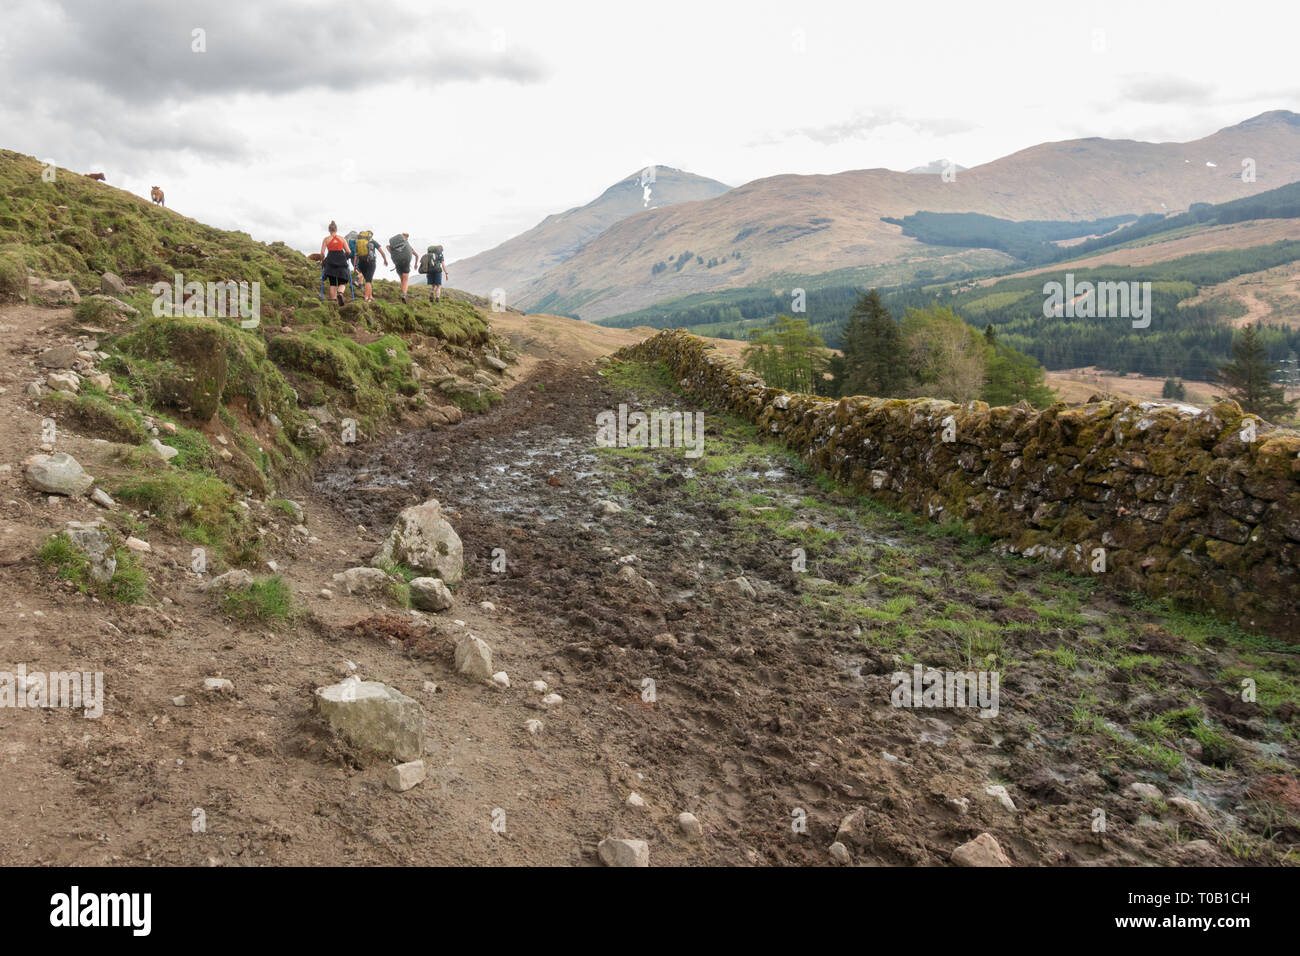 West Highland Way walkers avoiding mud and cow manure on section of footpath before Crianlarich known as cow pat alley in 2018 - reparwork  has since Stock Photo